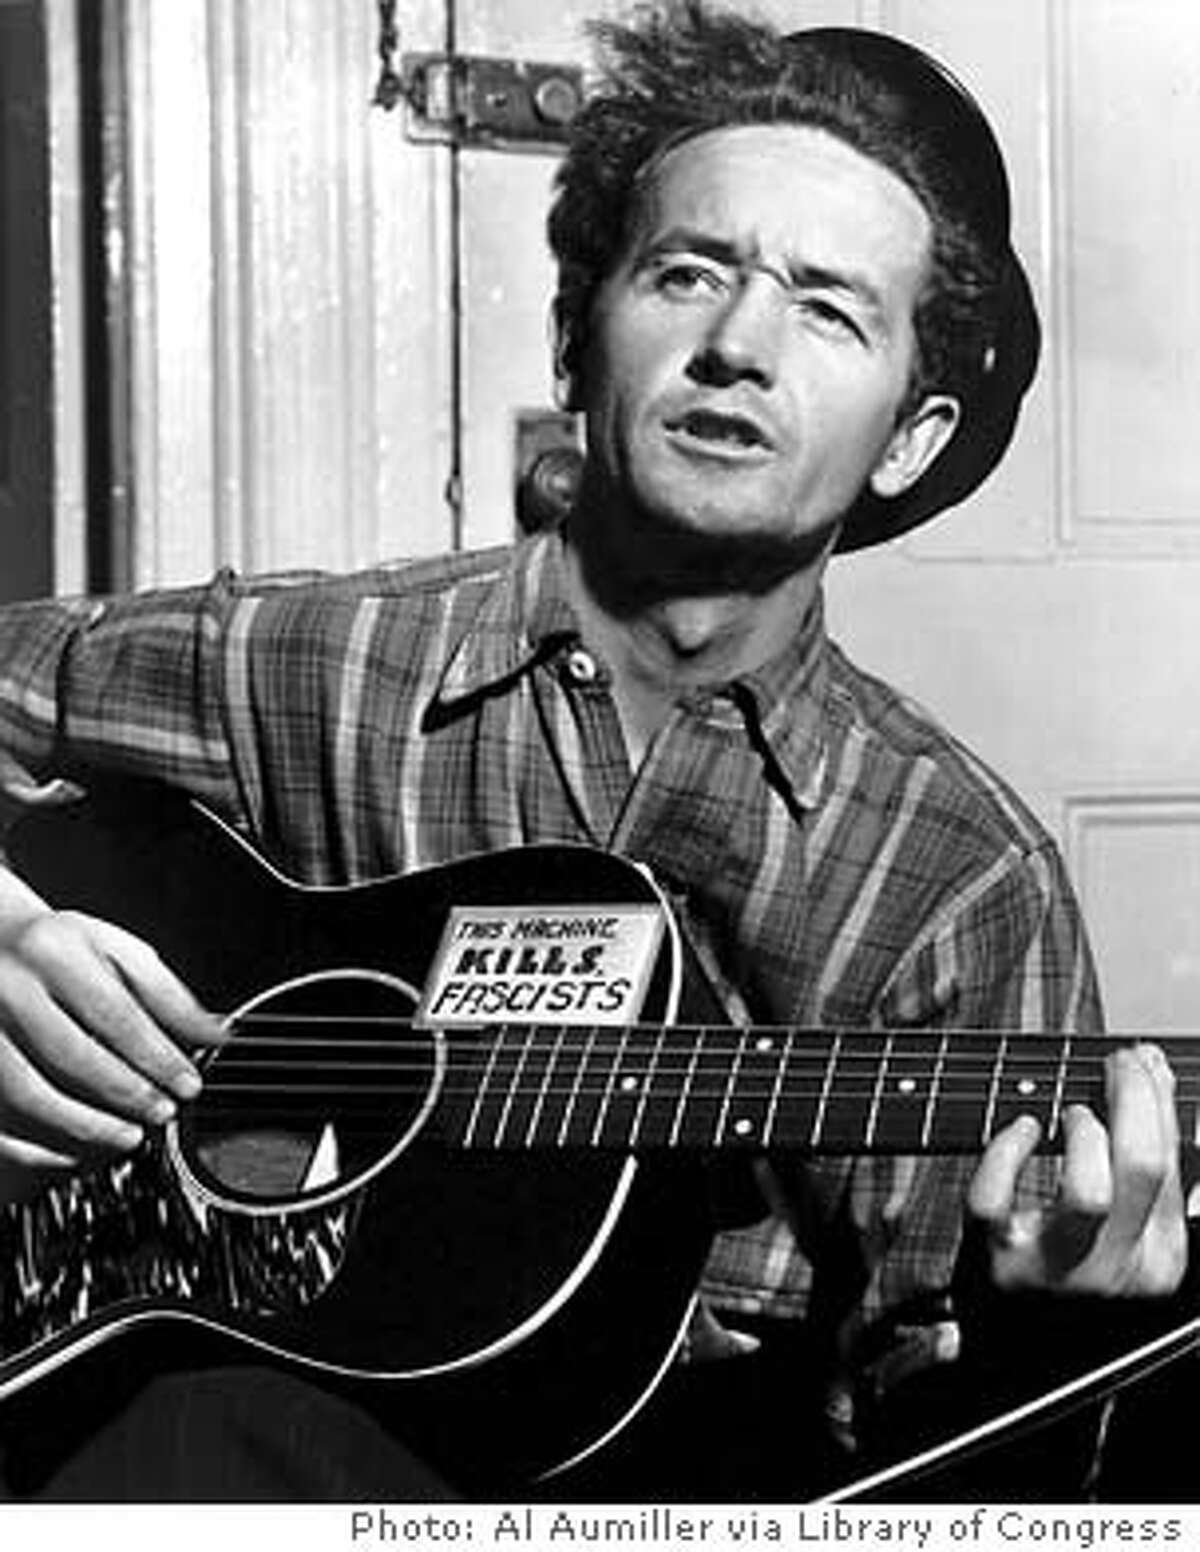 """CU31-B-18MAR02-PK-HO --- Legendary folk singer Woody Guthrie will be the subject of a book talk and musical tribute to celebrate his 90th birthday. On April 1, 2002 at 6:00 pm, Elizabeth Partridge, author of the new biography, """"This Land Belongs To You and Me: The Life and Music of Woody Guthrie,"""" will give a slide-illustrated talk on Guthrie followed by a musical tribute with Country Joe McDonald. The event will take place at the San Francisco Performing Arts Library & Museum, 401 Van Ness Avenue, Veterans Building, 4th Floor. Space is limited and advance tickets are recommended. Call 415-255-4800. For more information, visit www.sfpalm.org. Photo Credit: Al Aumiller, courtesy Library of Congress. (HANDOUT PHOTO)"""